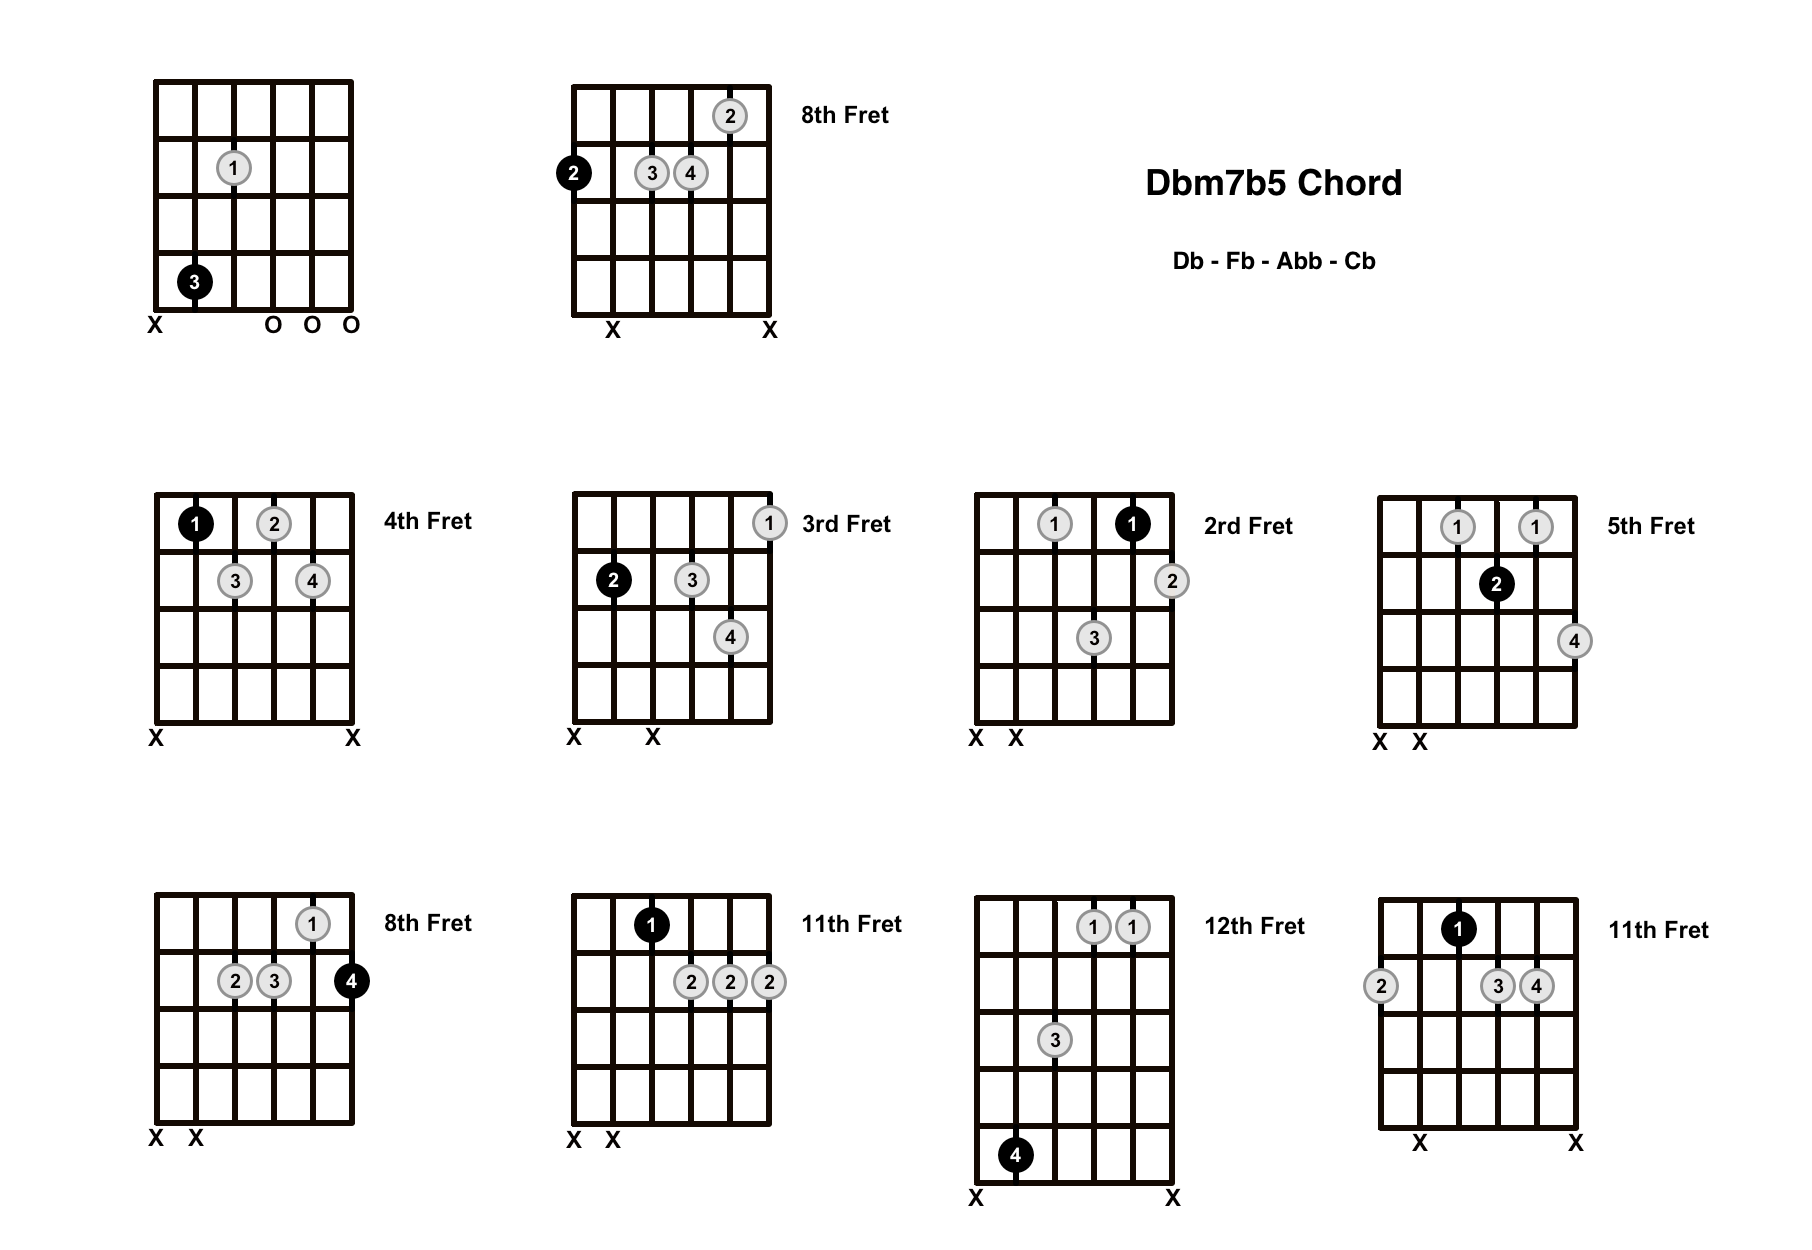 Dbm7b5 Chord On The Guitar (D Flat Minor 7 Flat 5, D Flat Half Diminished) – Diagrams, Finger Positions and Theory